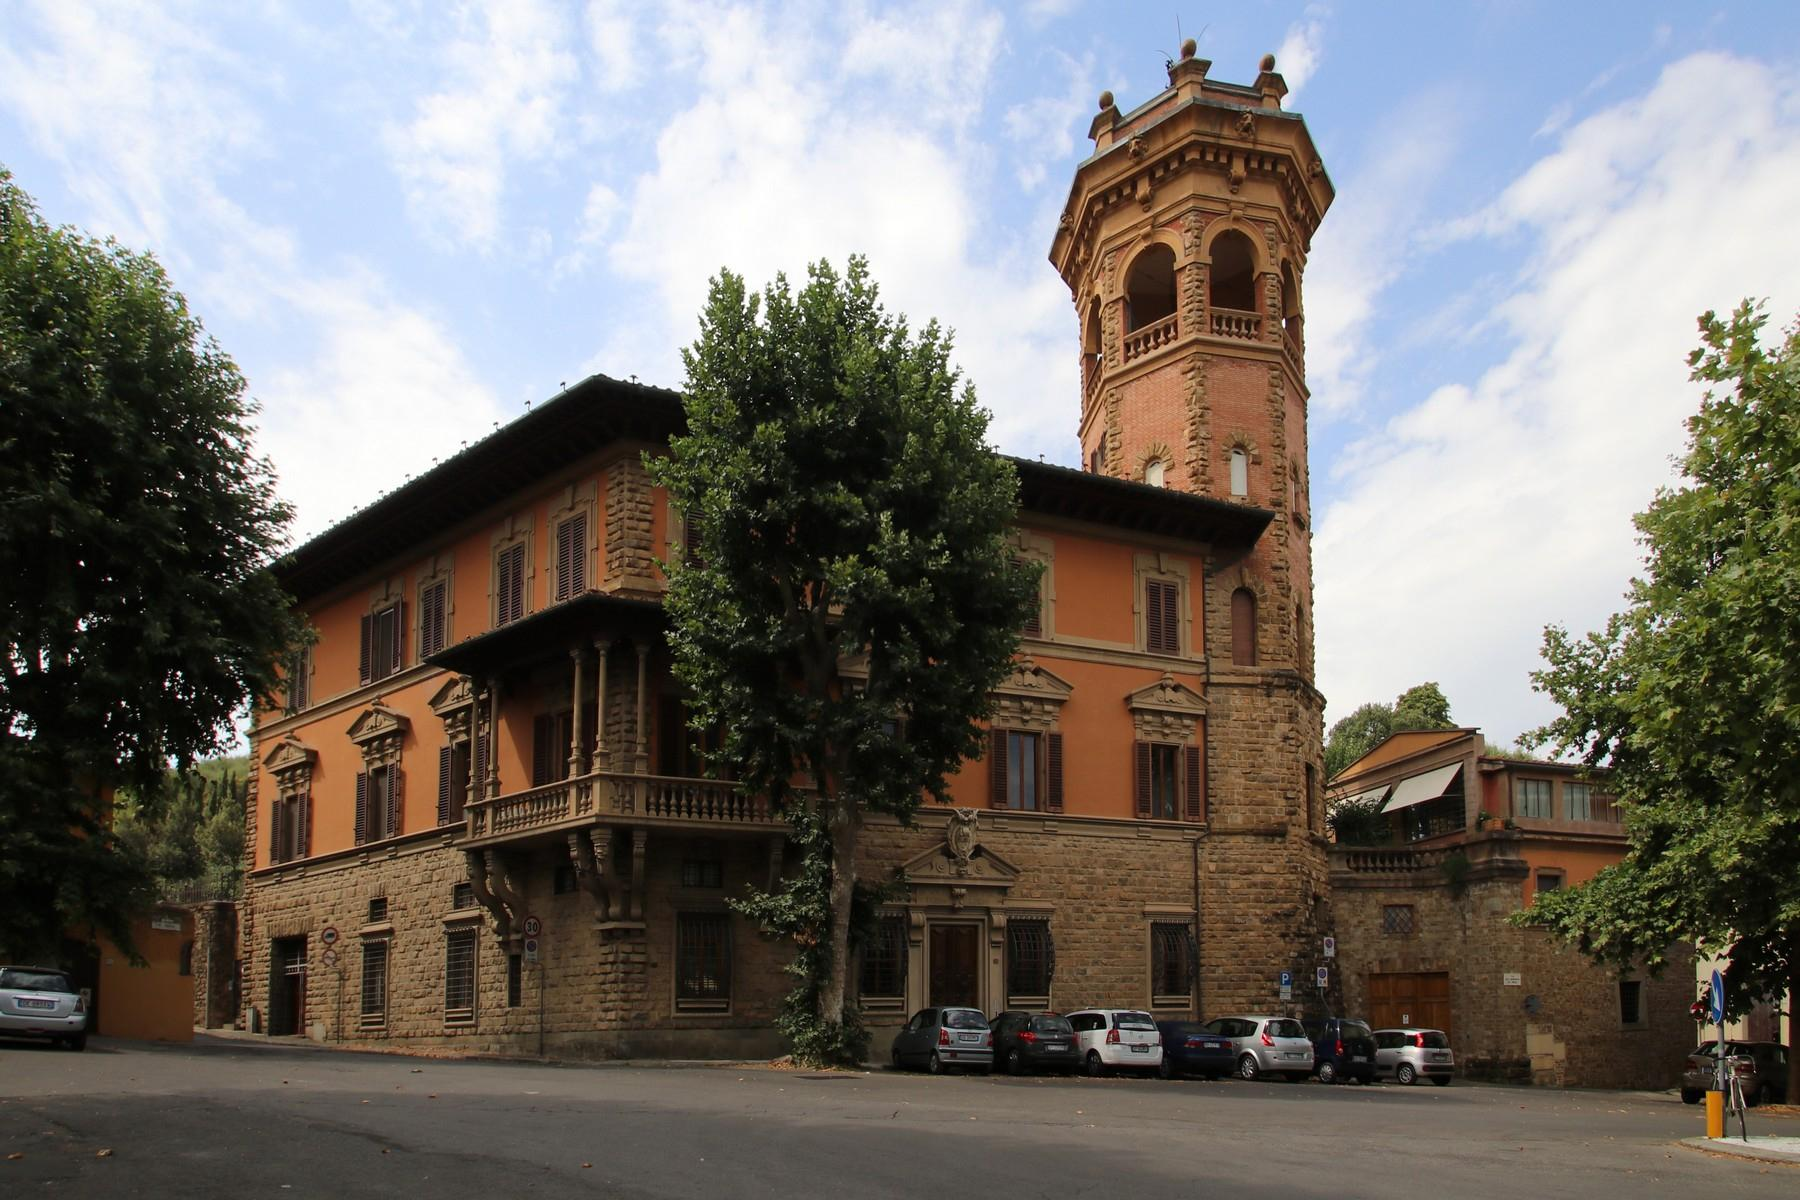 Flamboyant Top-floor Apartment with Tower in Bellosguardo, Florence - 2